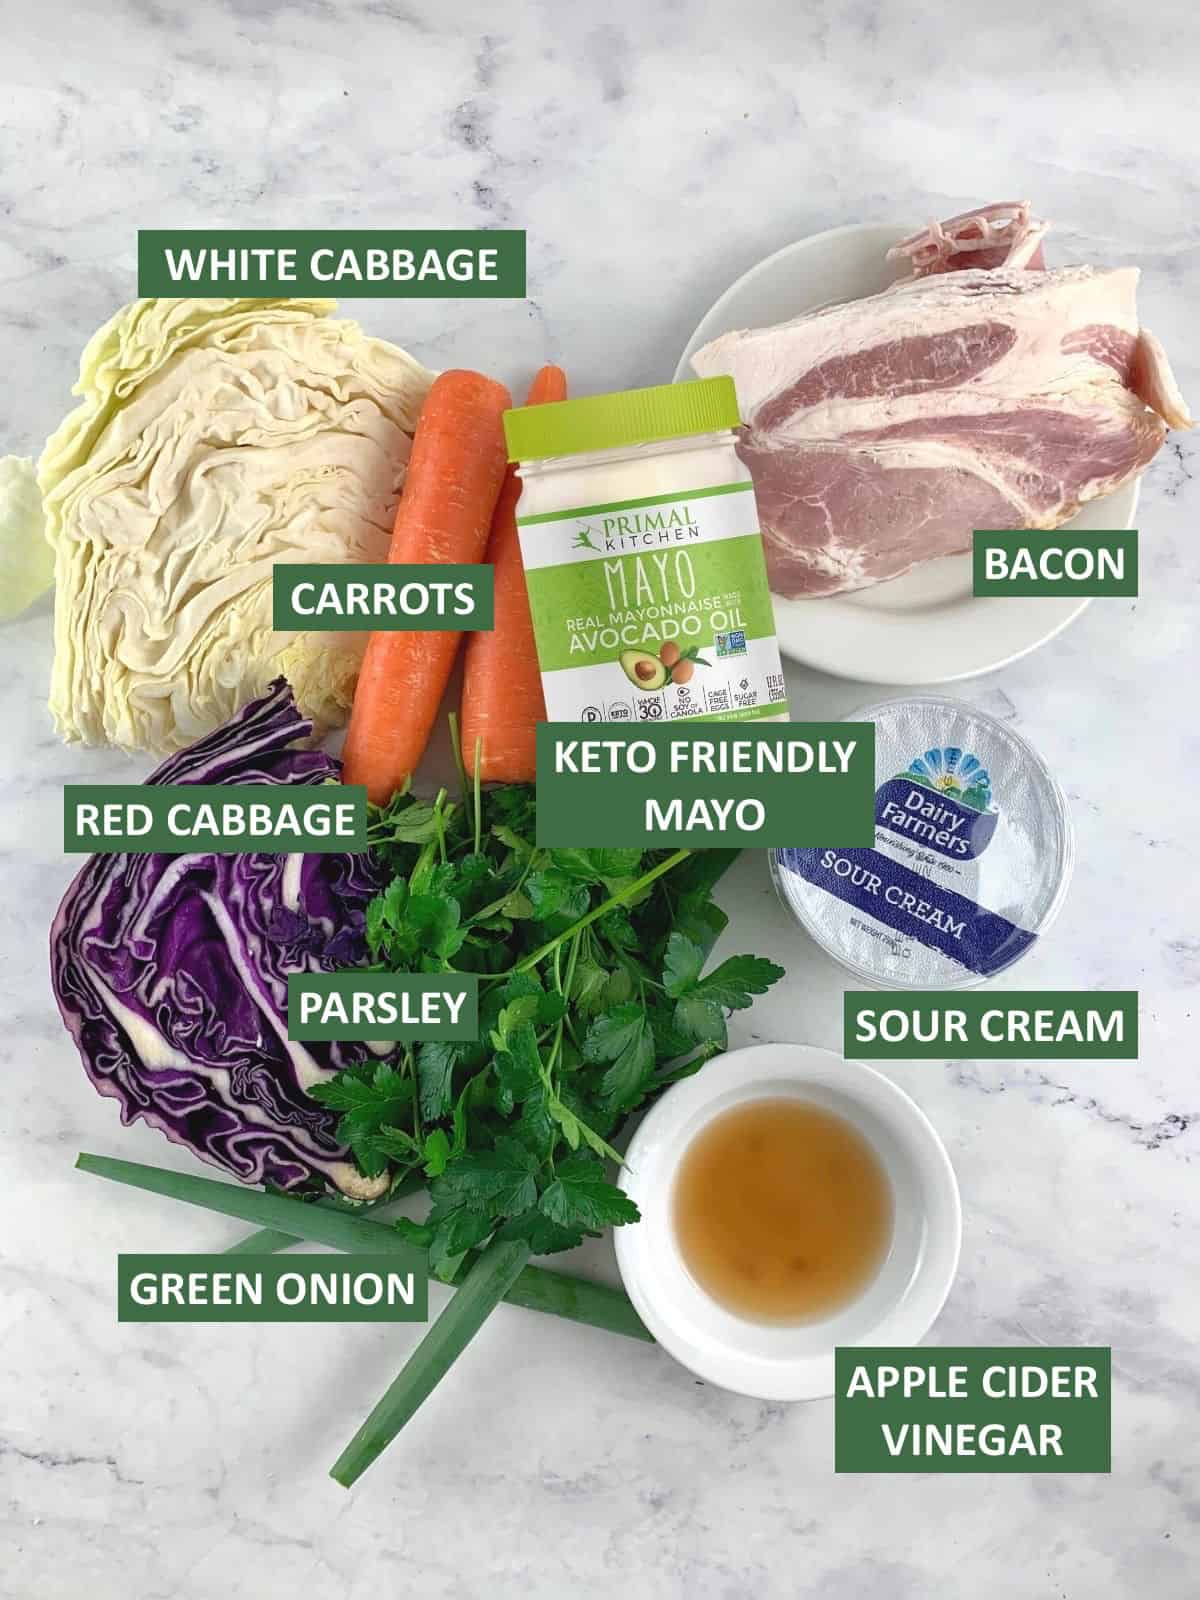 LABELLED INGREDIENTS NEEDED TO MAKE KETO COLESLAW